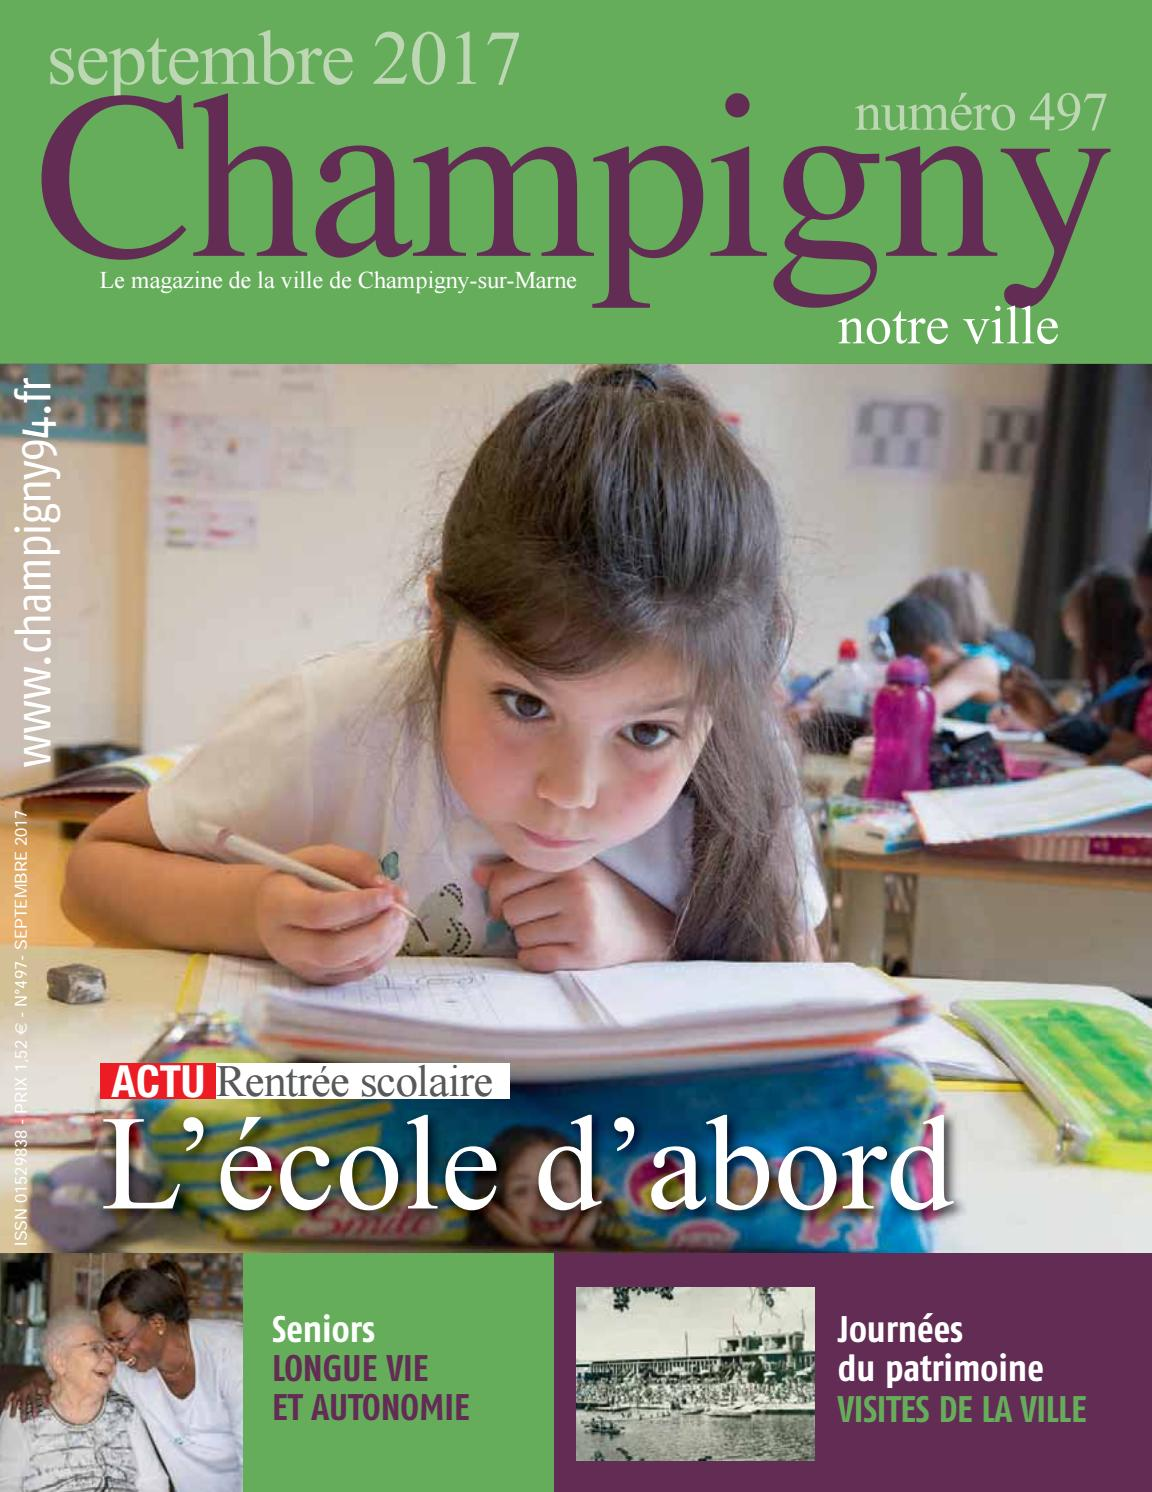 guide-rencontres-adulteres fr champigny sur marne